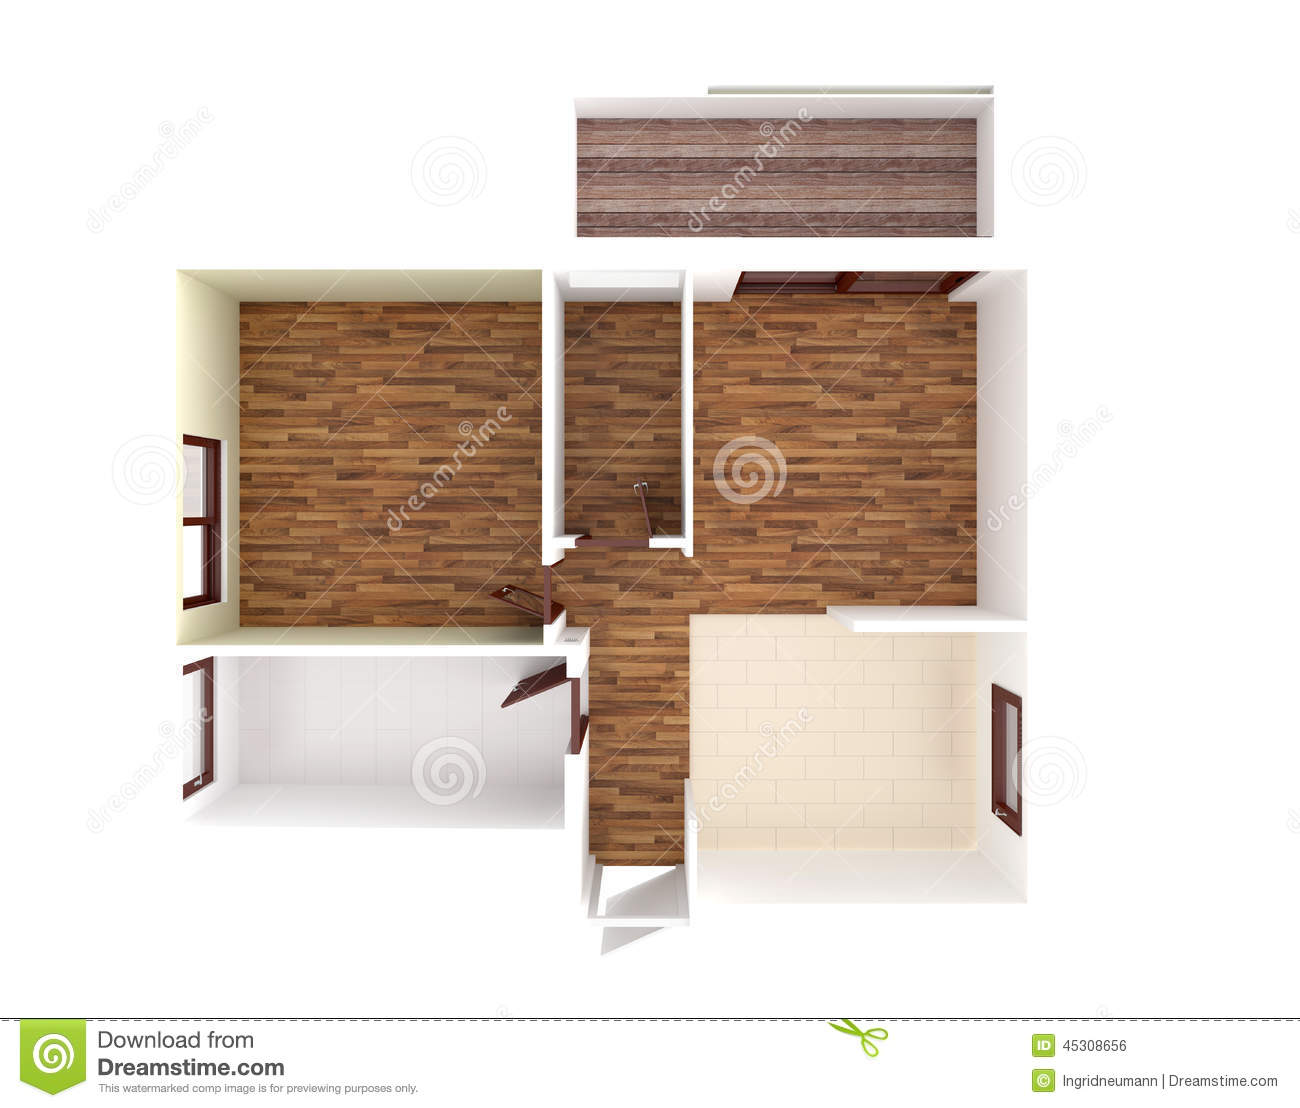 House plan top view interior design stock illustration for Kitchen dining hall design